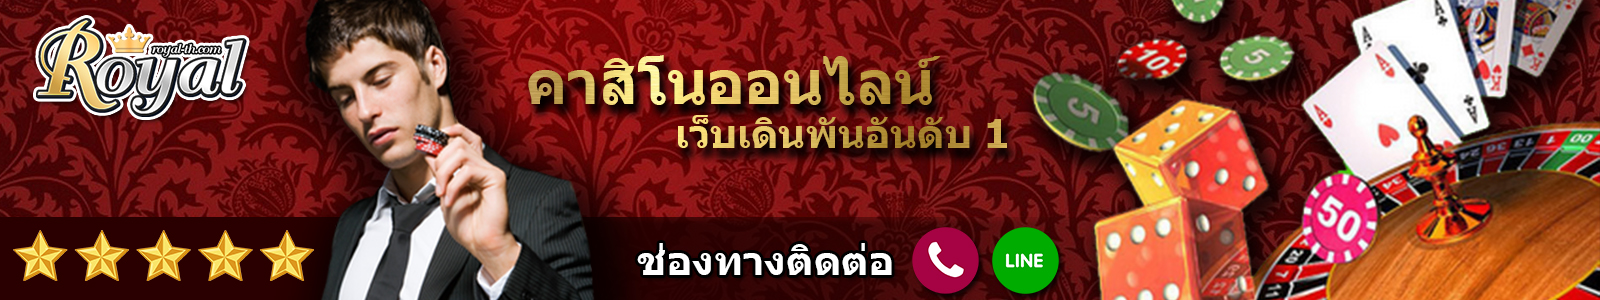 Royal-th banner casino online number 1